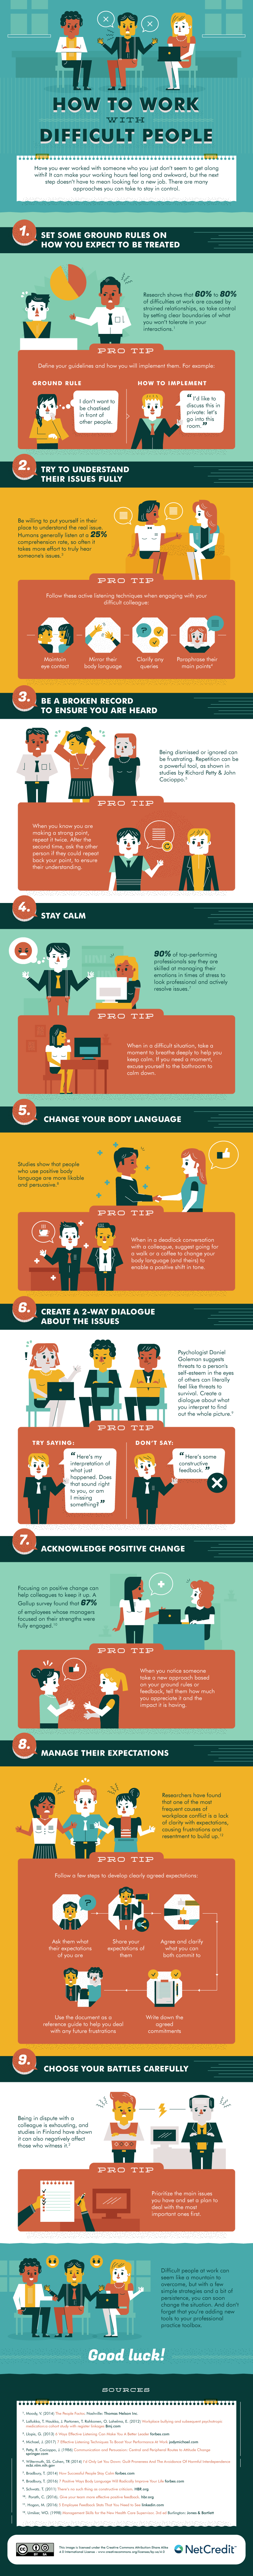 DESIGN - How to Work With Difficult People